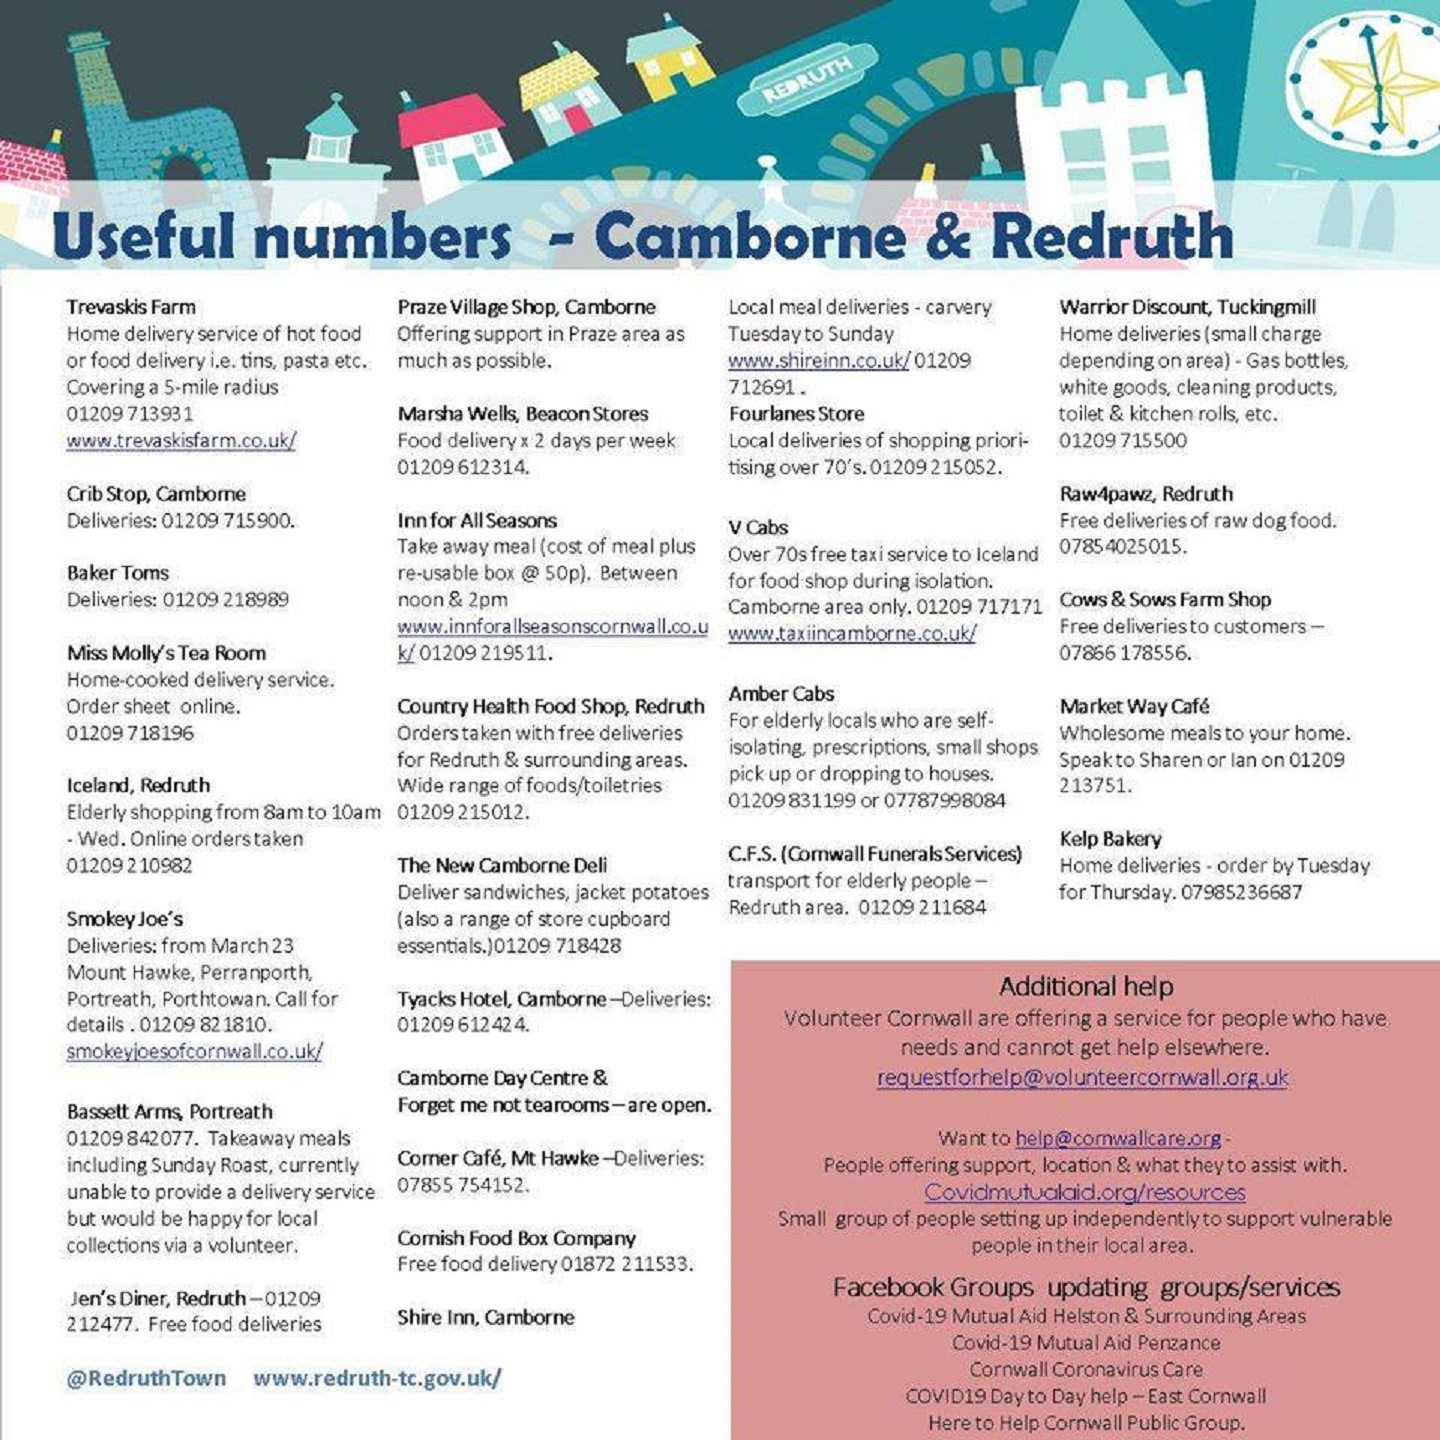 Useful numbers across Camborne, Redruth and Hayle